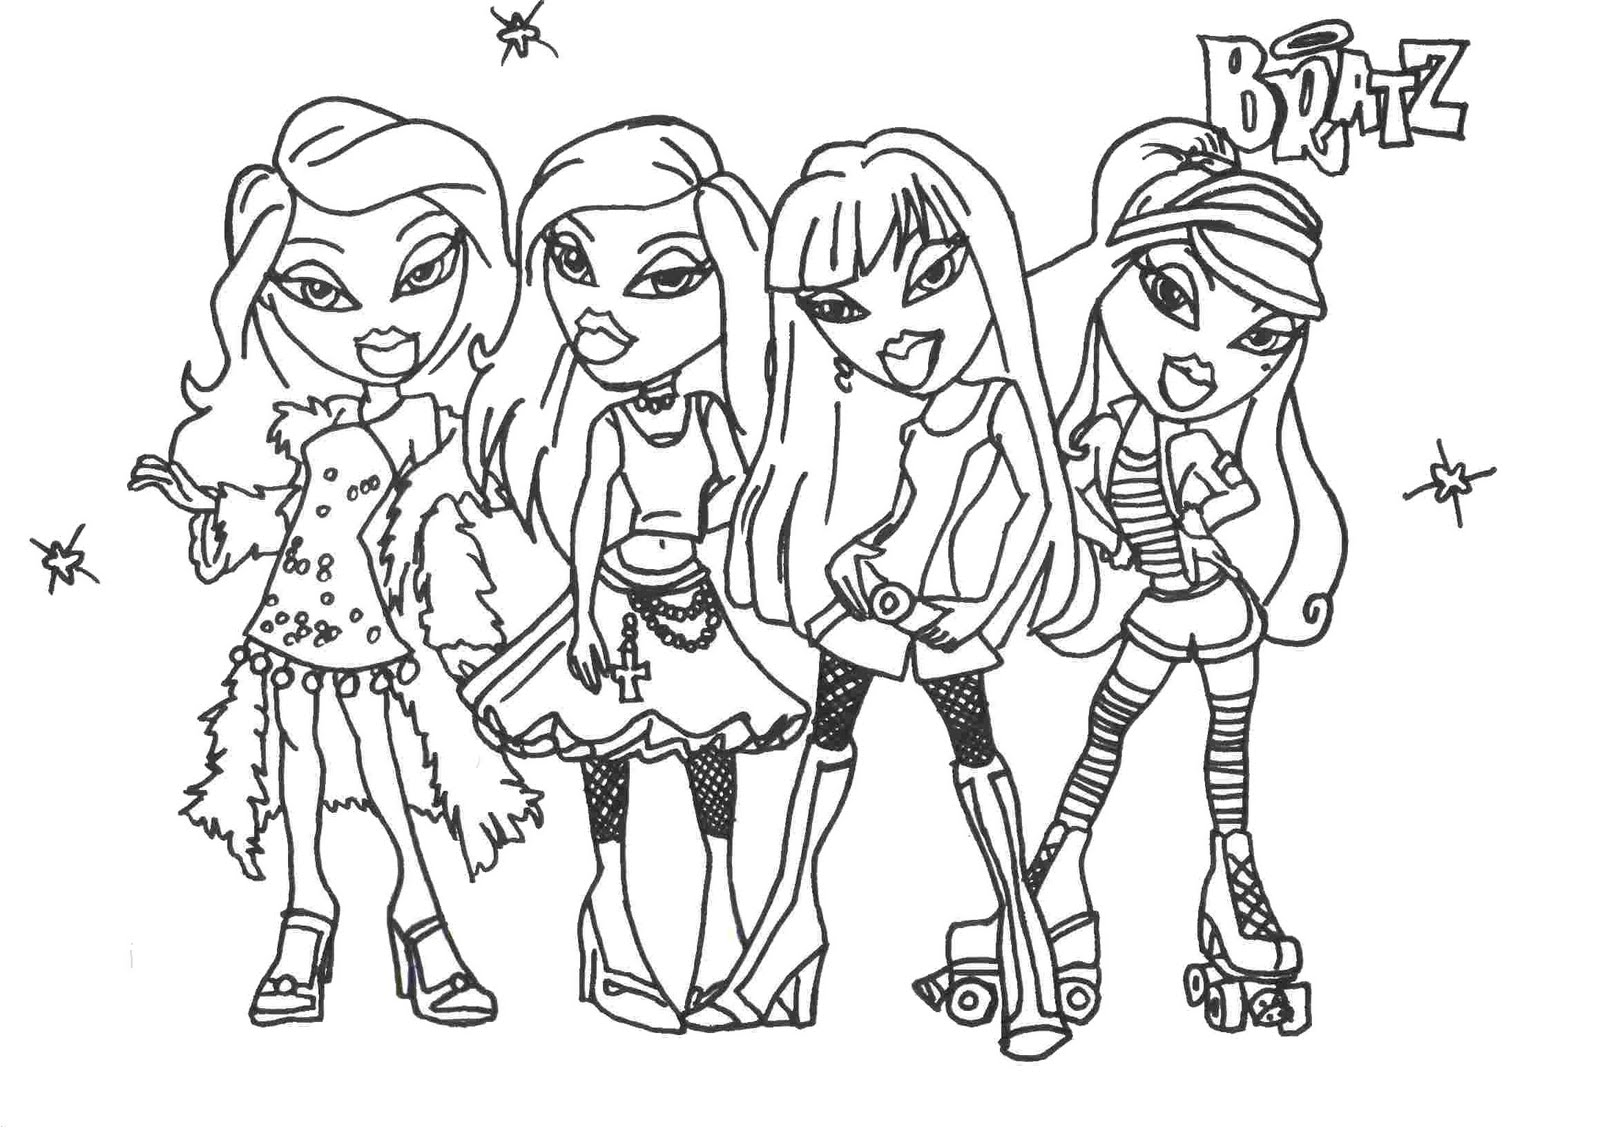 coloring pages games bratz free - photo#12